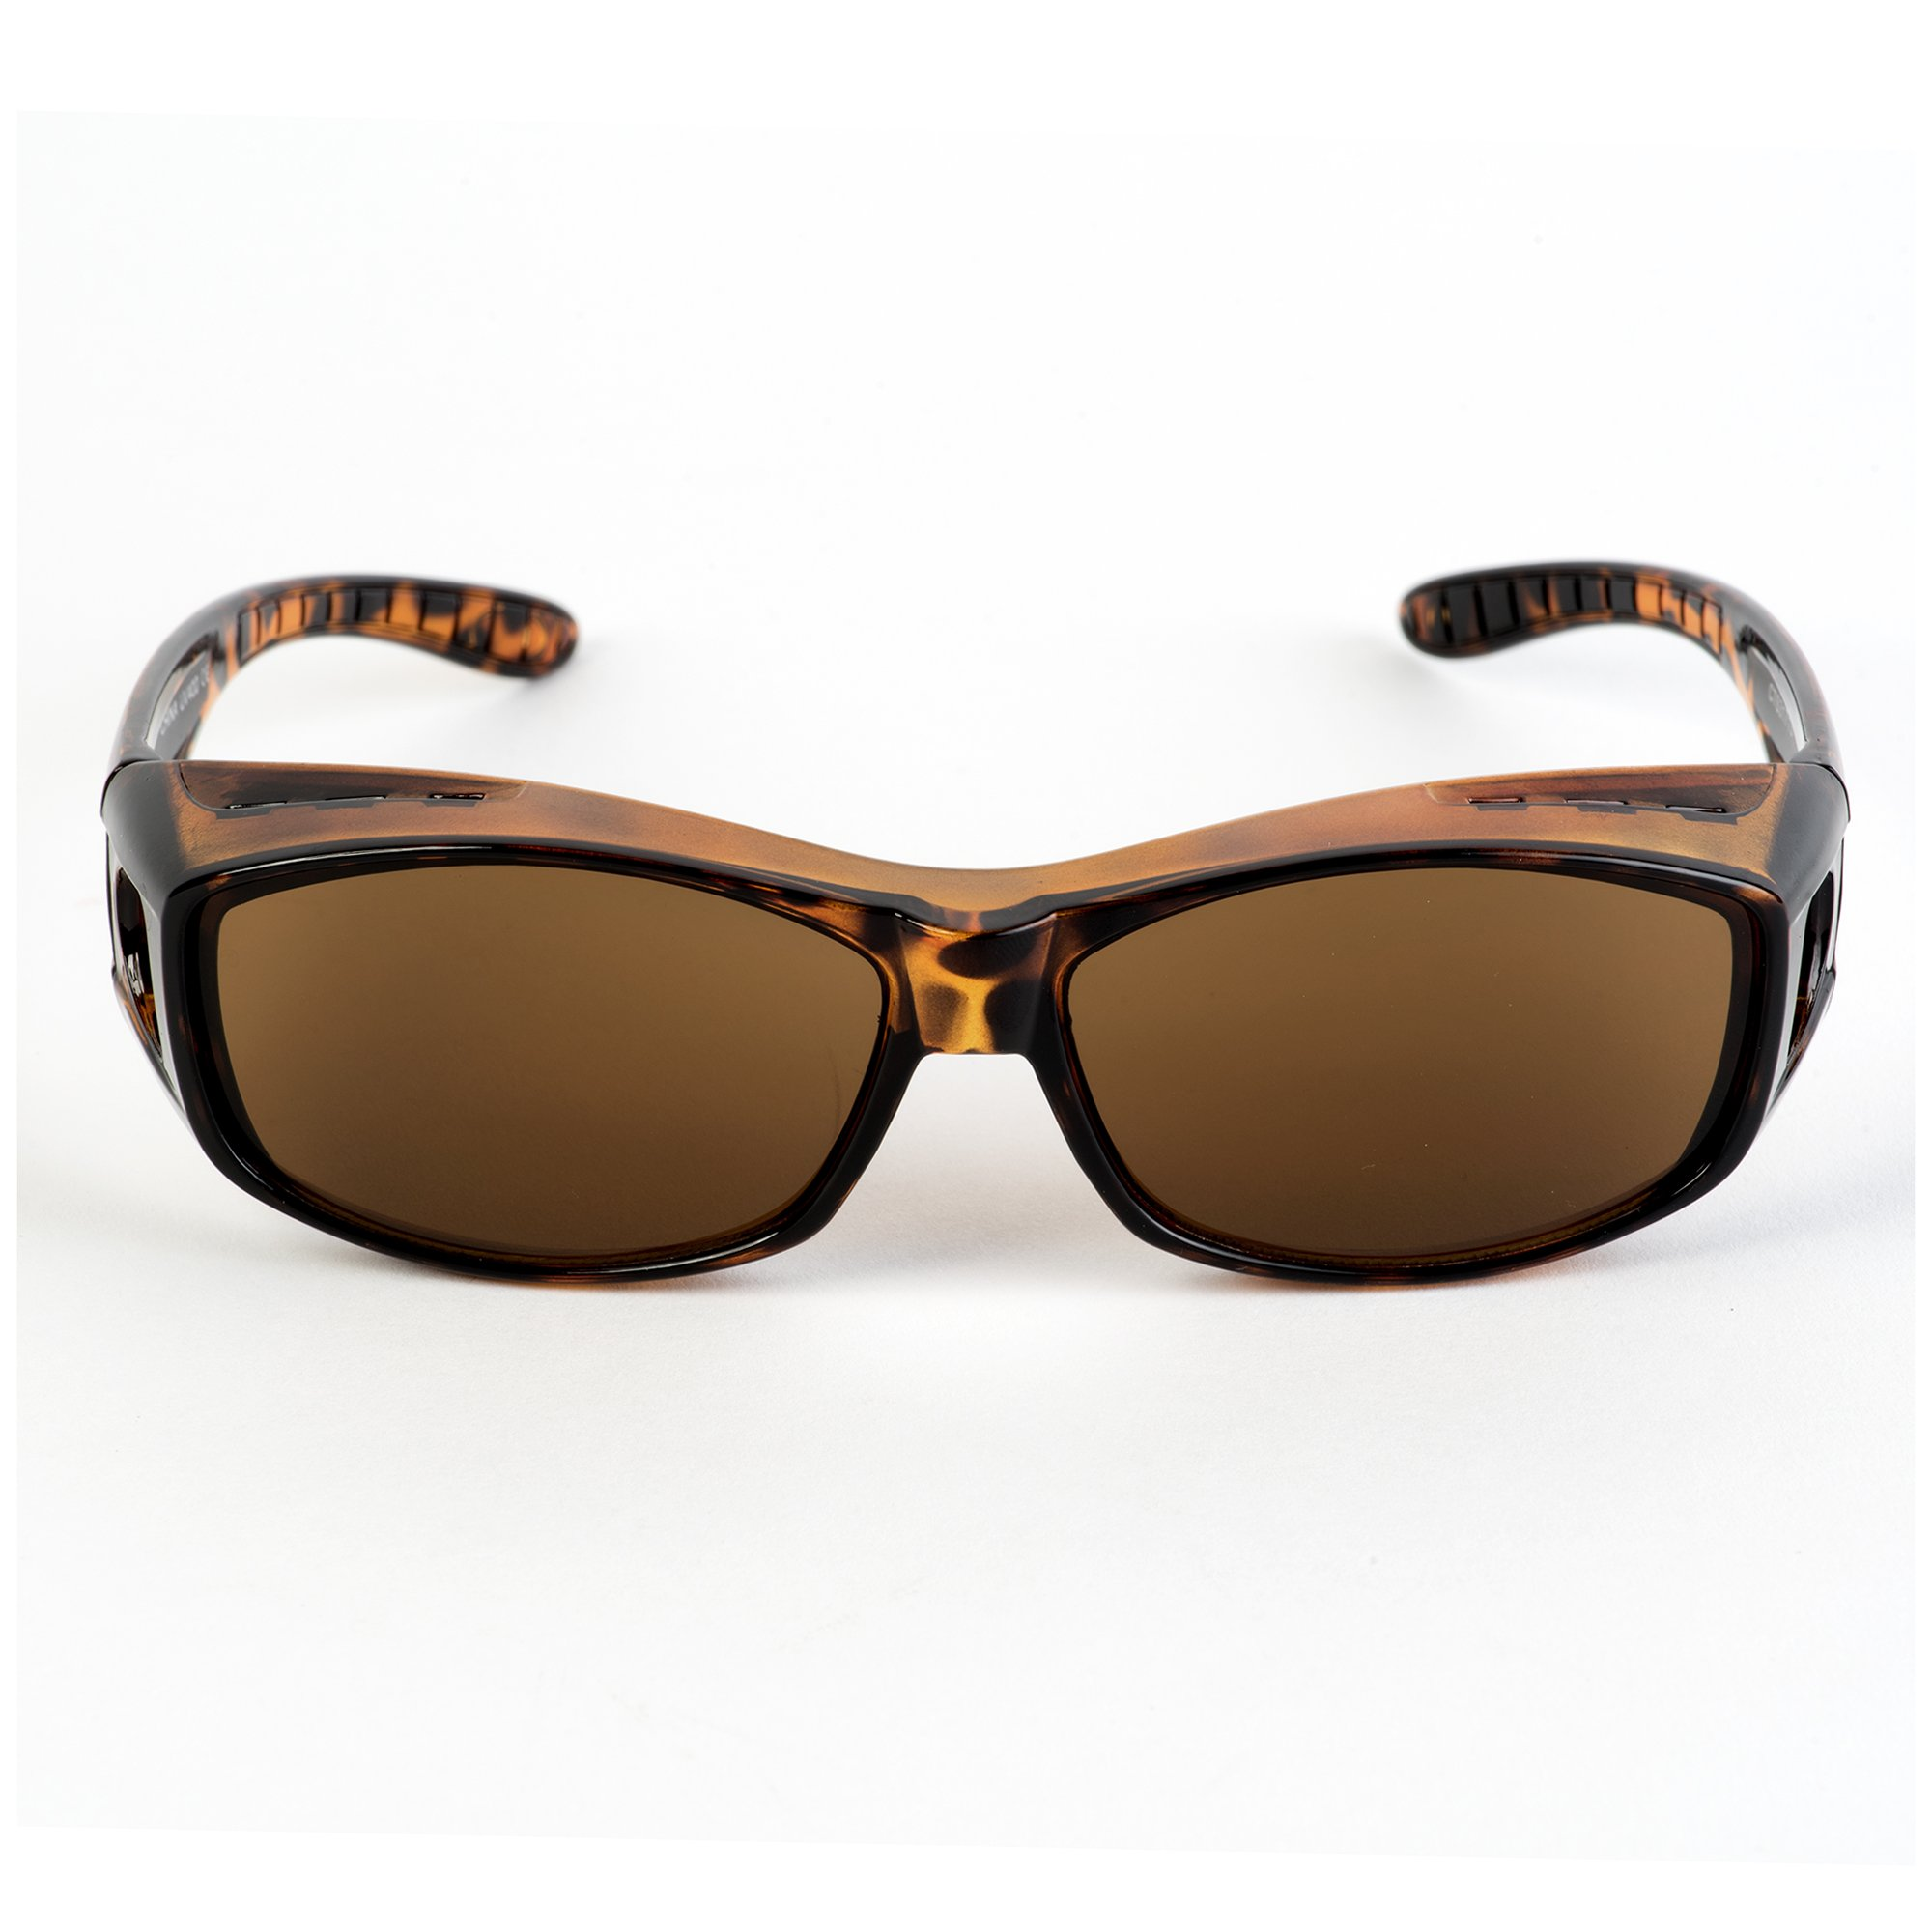 Over Glasses Sunglasses - Fitover Sunglasses with 100% UV Protection - By Pointed Designs (Leopard) by Pointed Designs (Image #4)